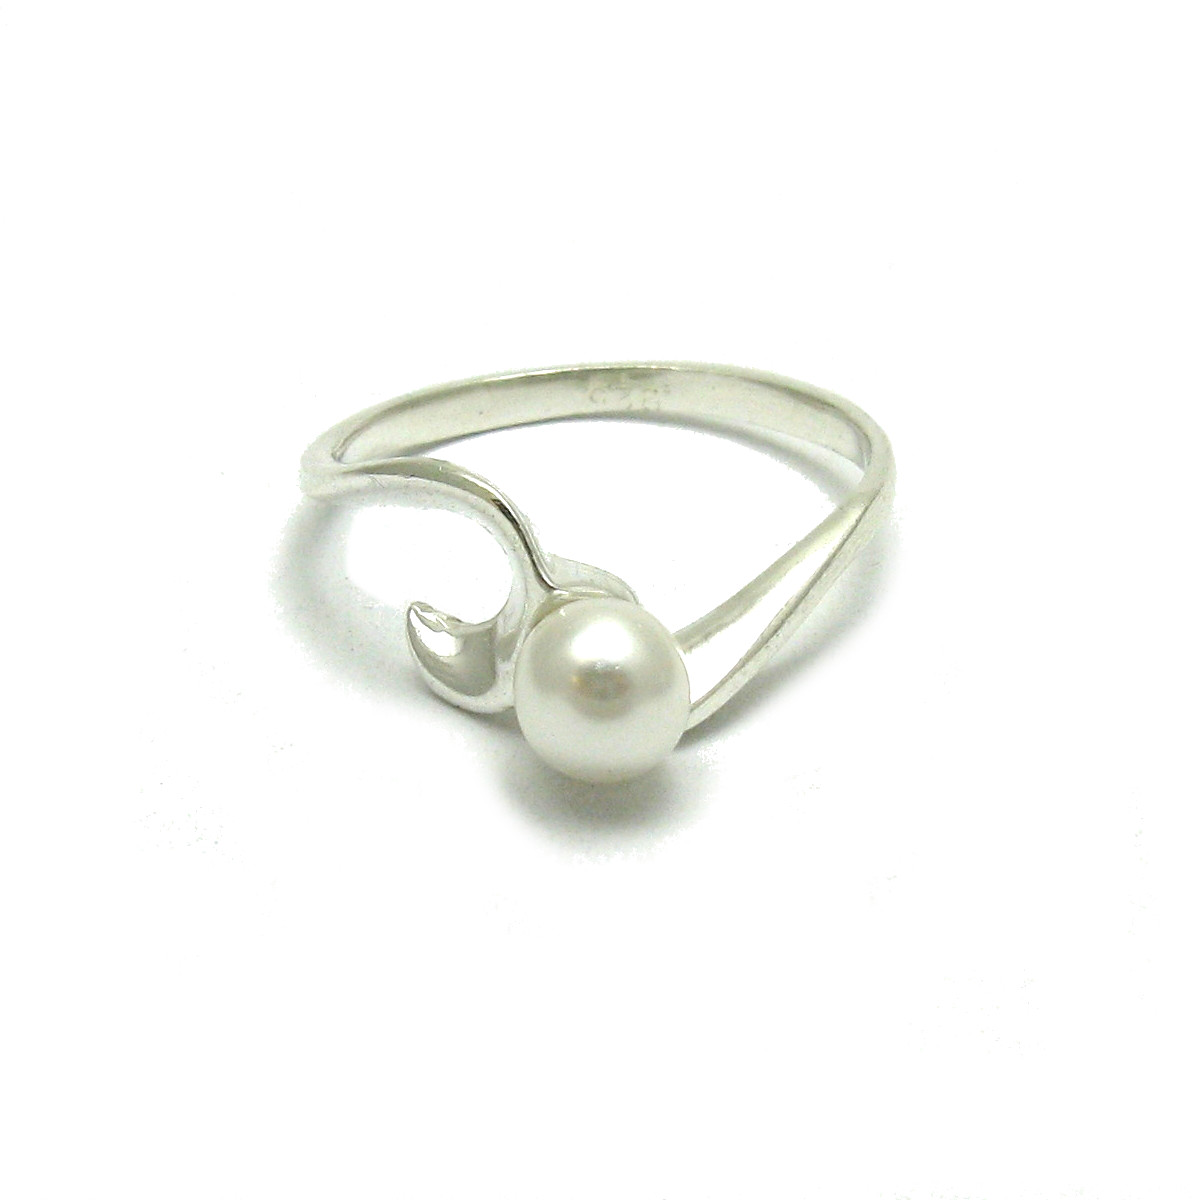 Silver ring - R001659